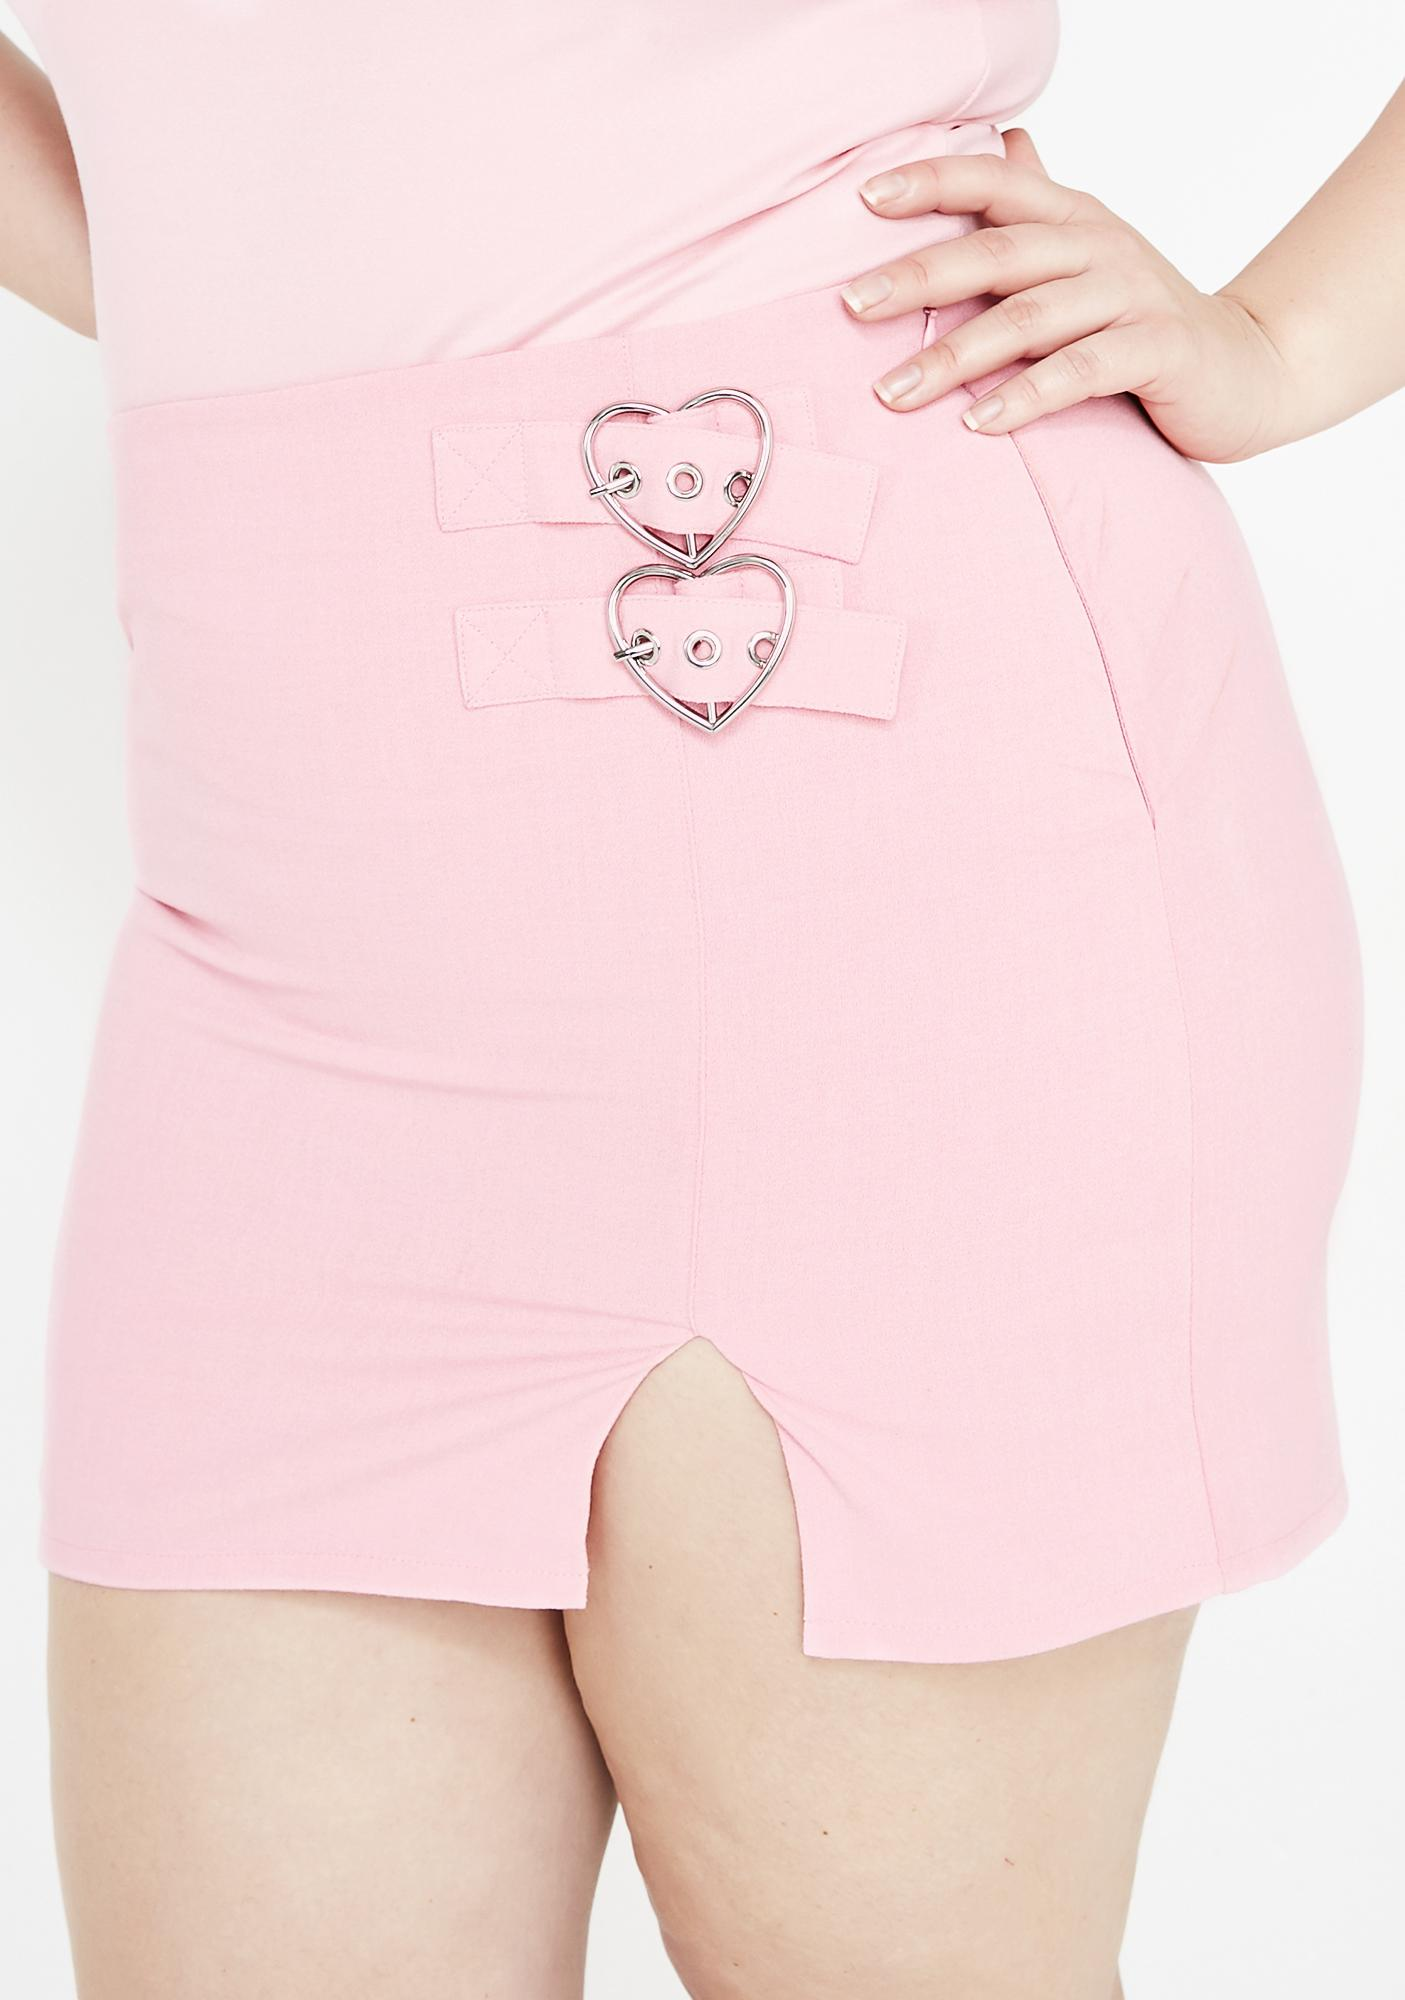 Sugar Thrillz Your Heart's Desire Mini Skirt